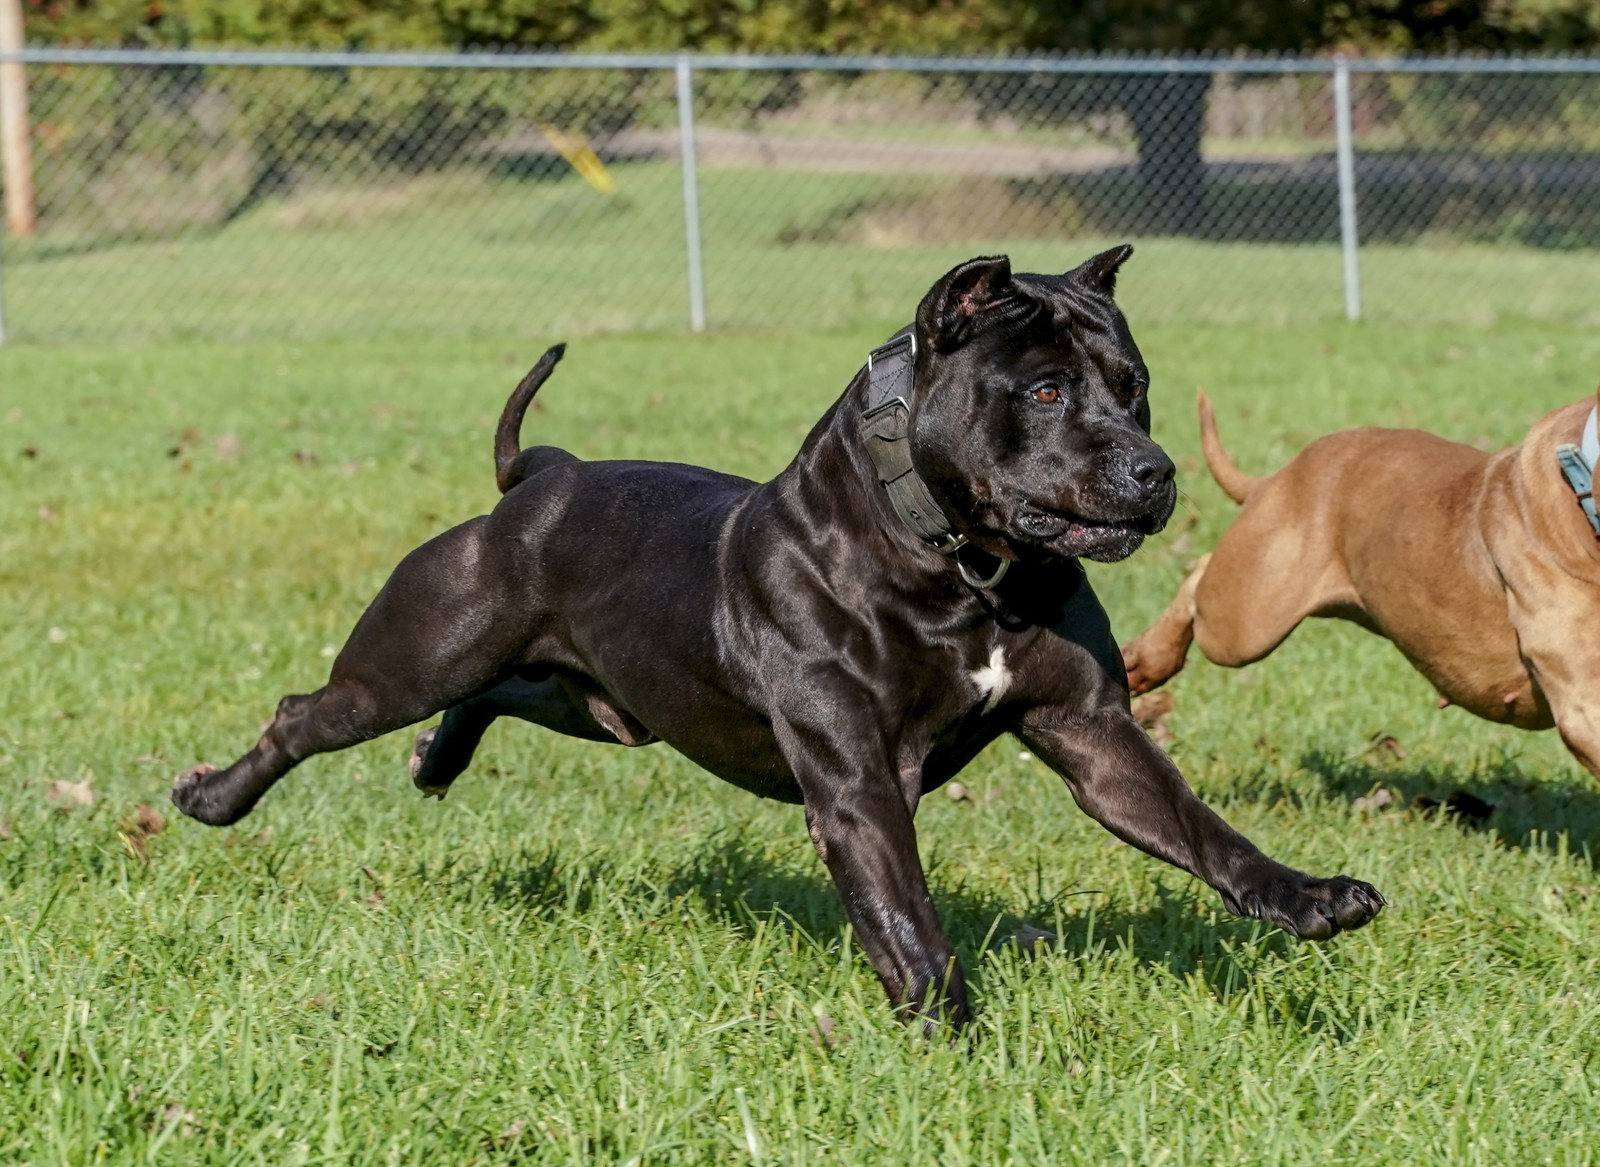 Batman, AKA Bruce Wayne an athletic, muscular Black pit bull strides out next to a partially visible red pit bull counter-part.